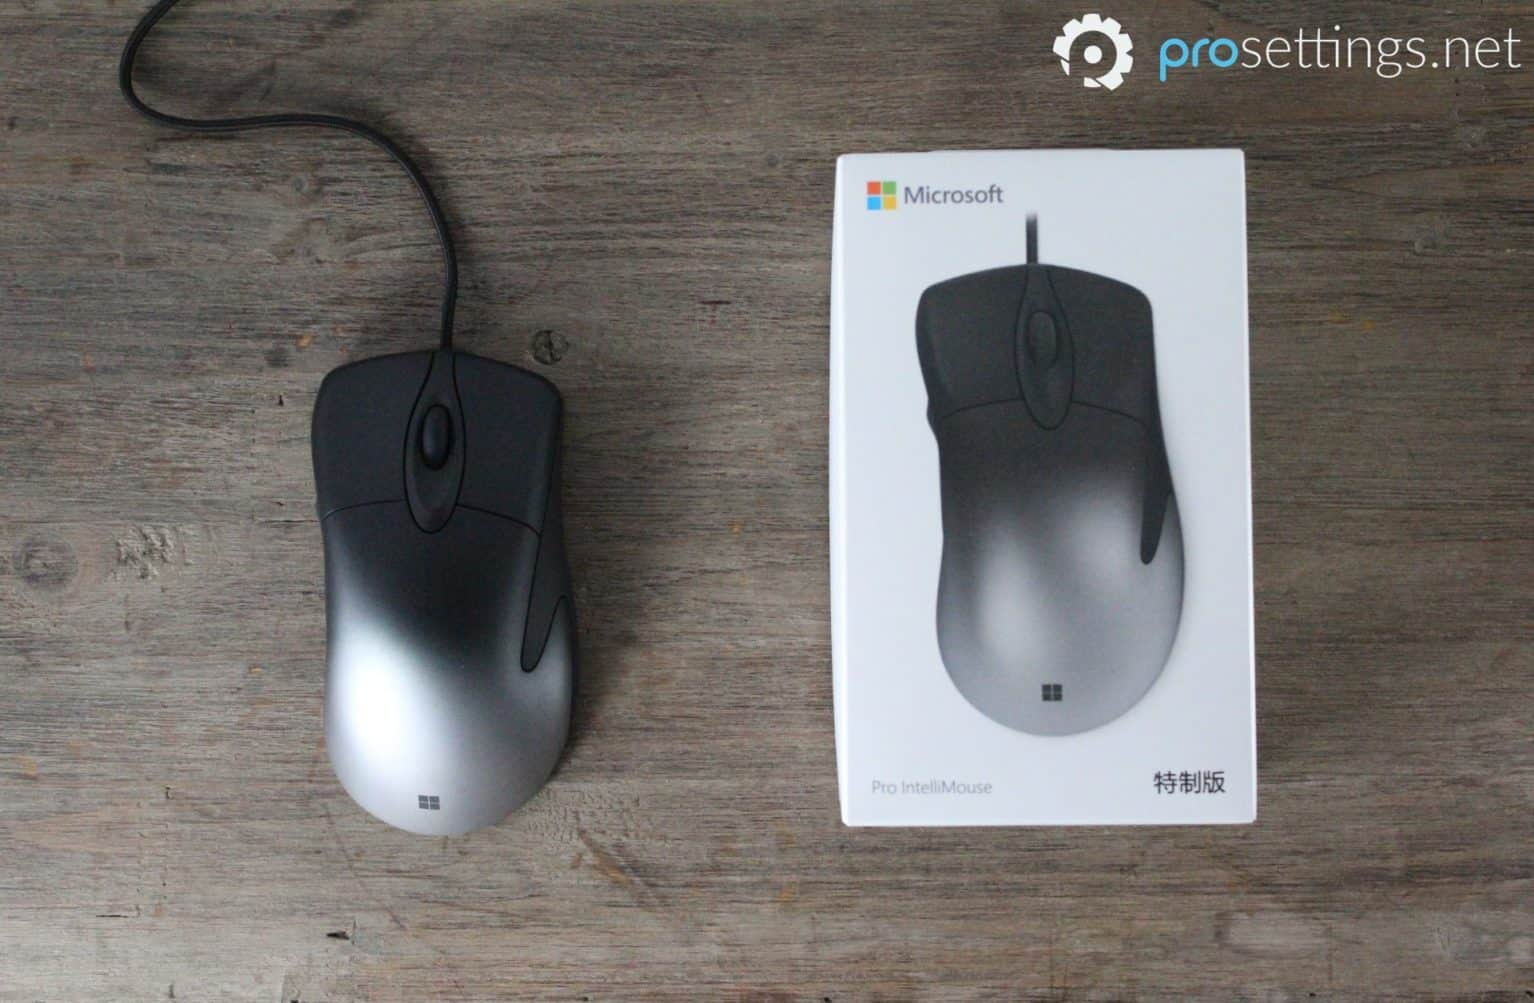 Microsoft Intellimouse Pro Packaging